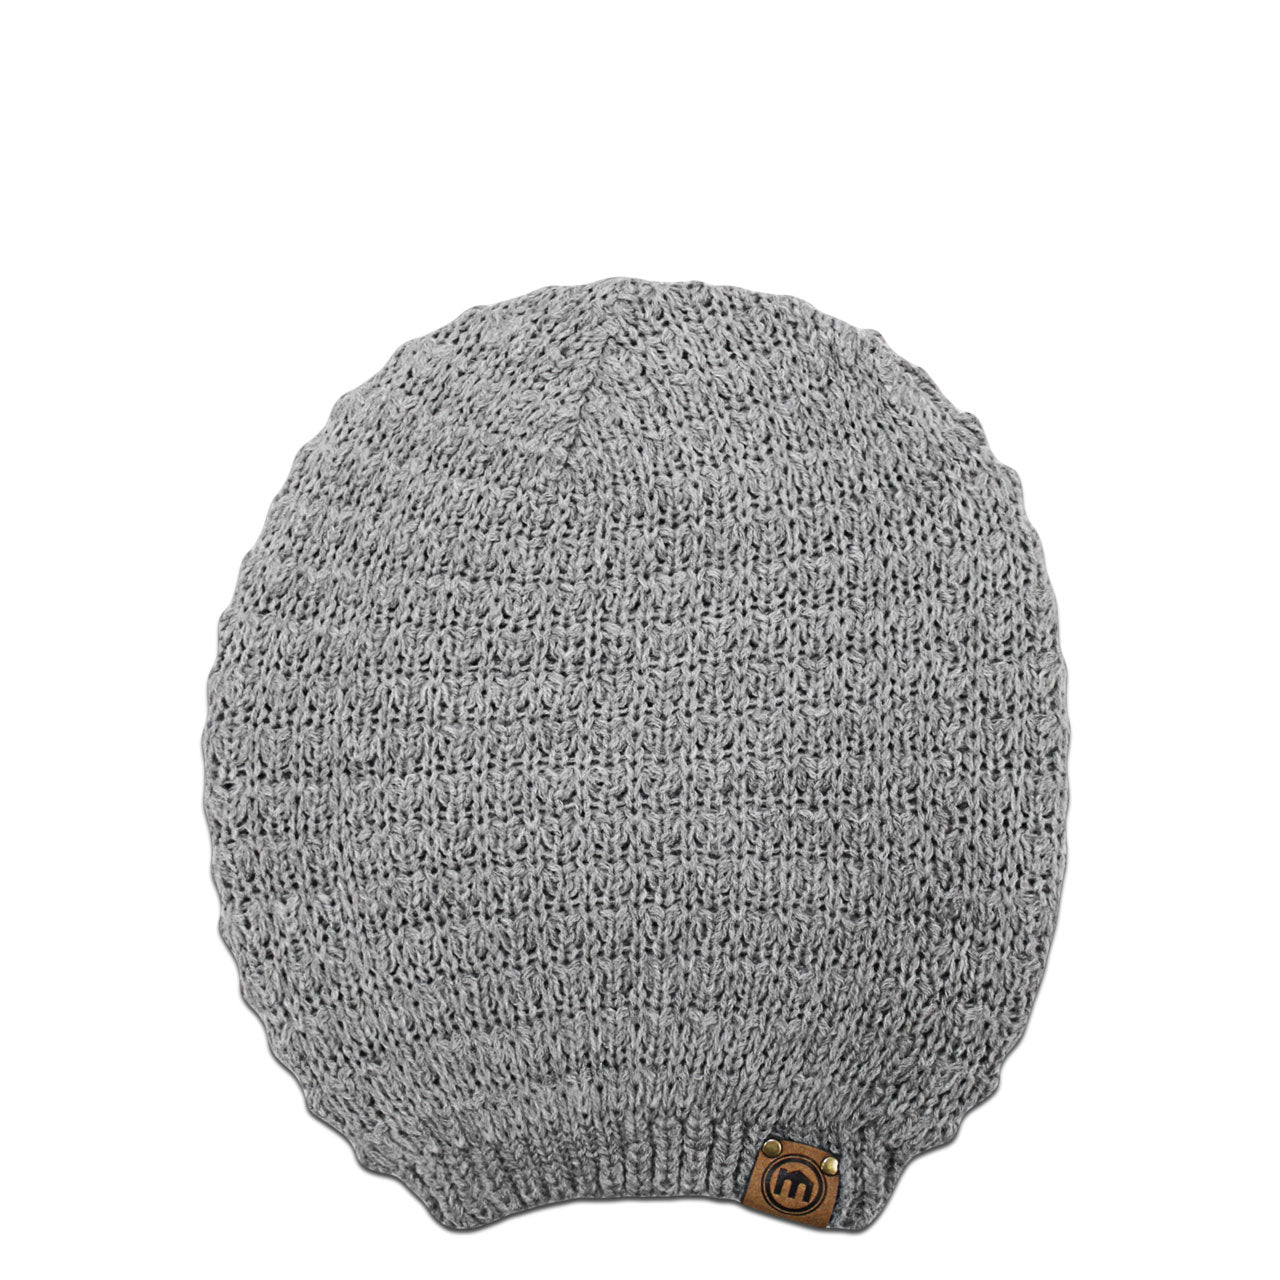 Mitscoots Outfitters - Heather Gray Slouchy Knit Beanie dacb08e085b